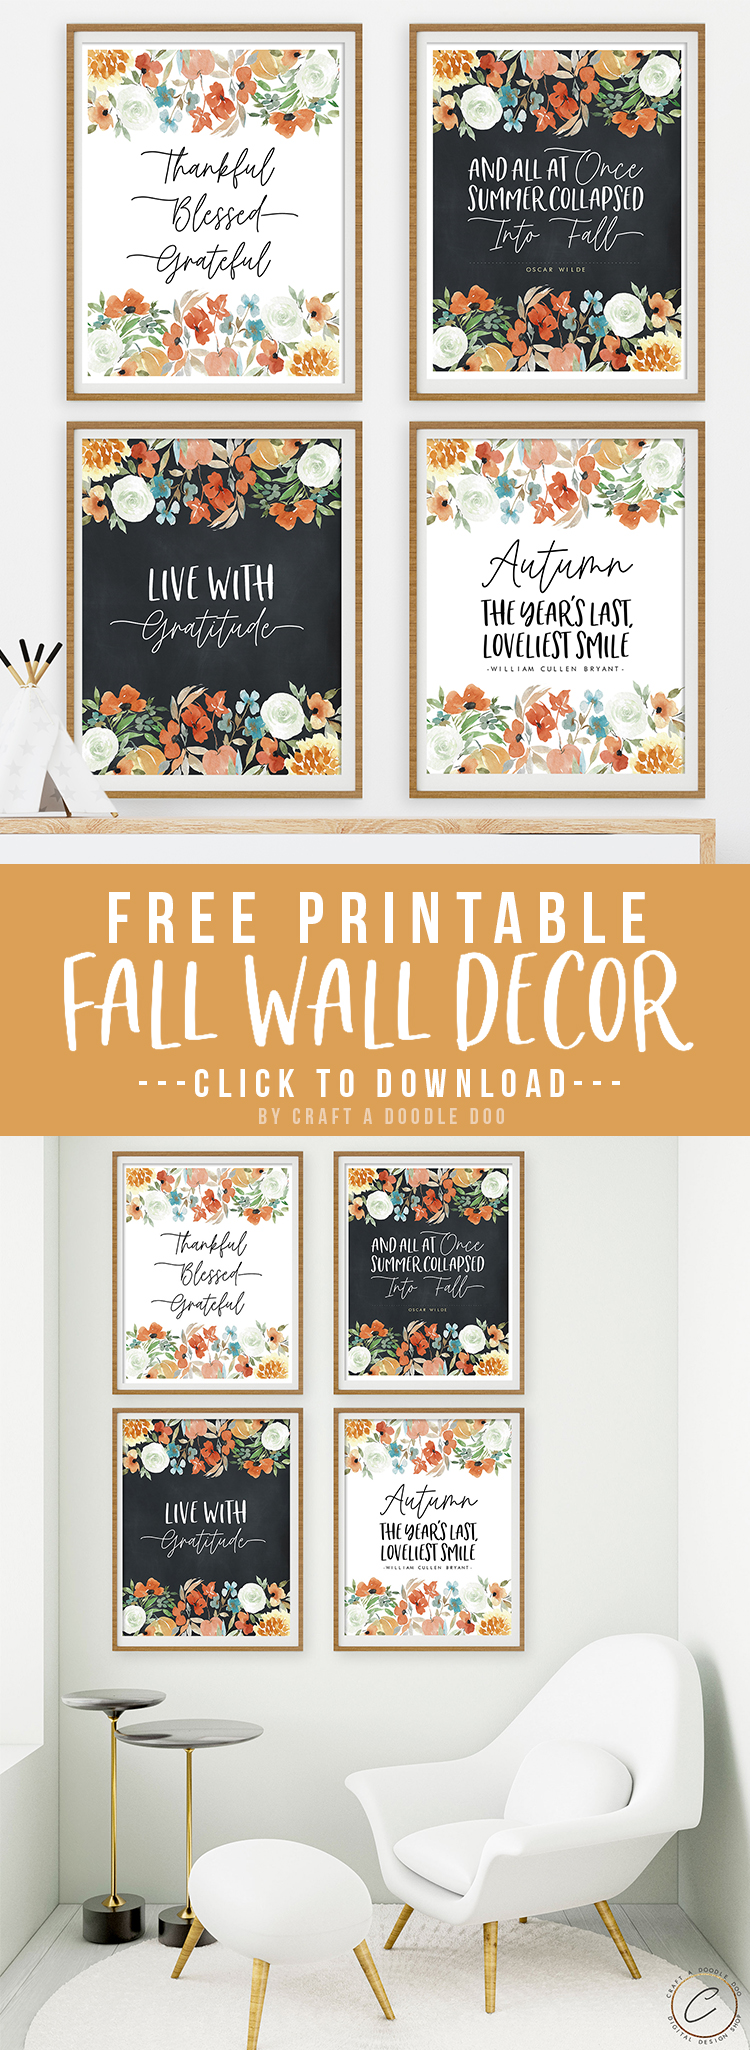 Free Fall Watercolor Rustic Wall Decor | Digital Autumn Art Print | Pumpkins and florals painting by Craft A Doodle Doo on Etsy #fallflorals #falldecorinspo #fallwallart #fallprintables